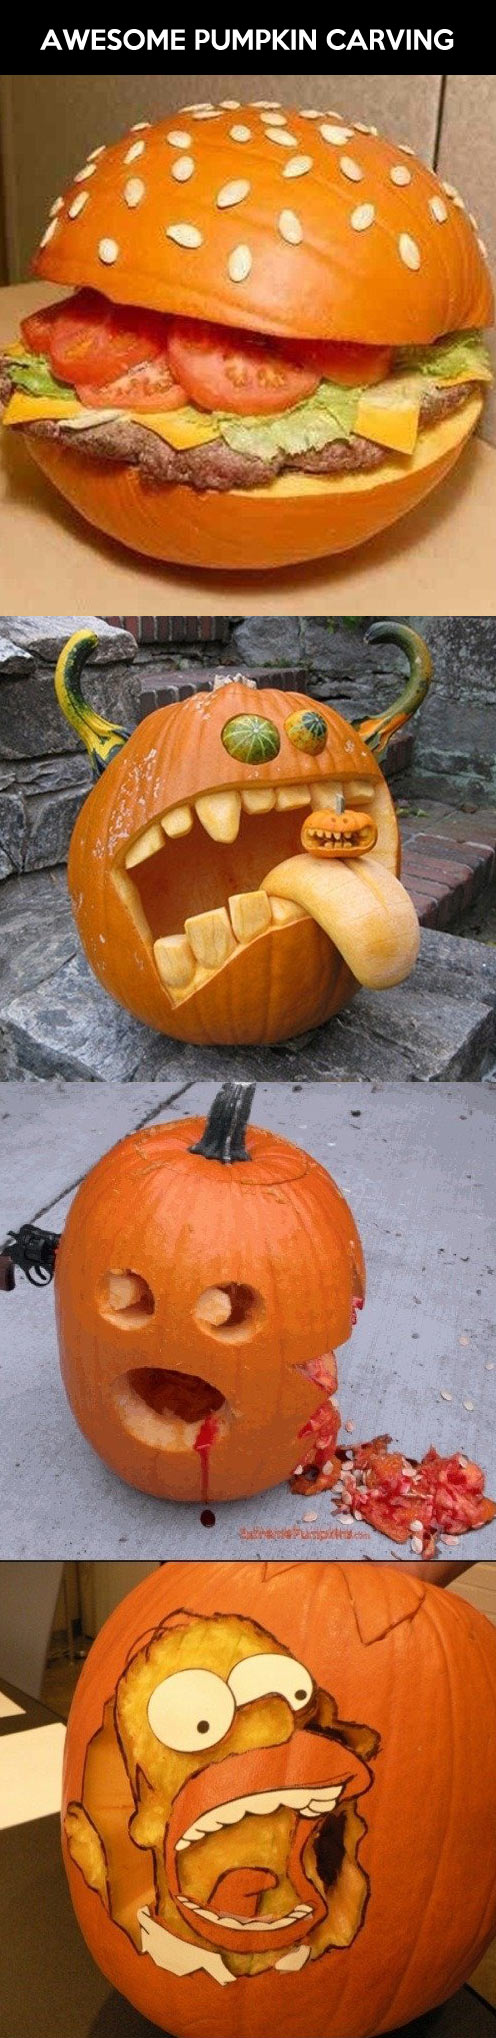 funny-pumpkin-Halloween-carving-compilation